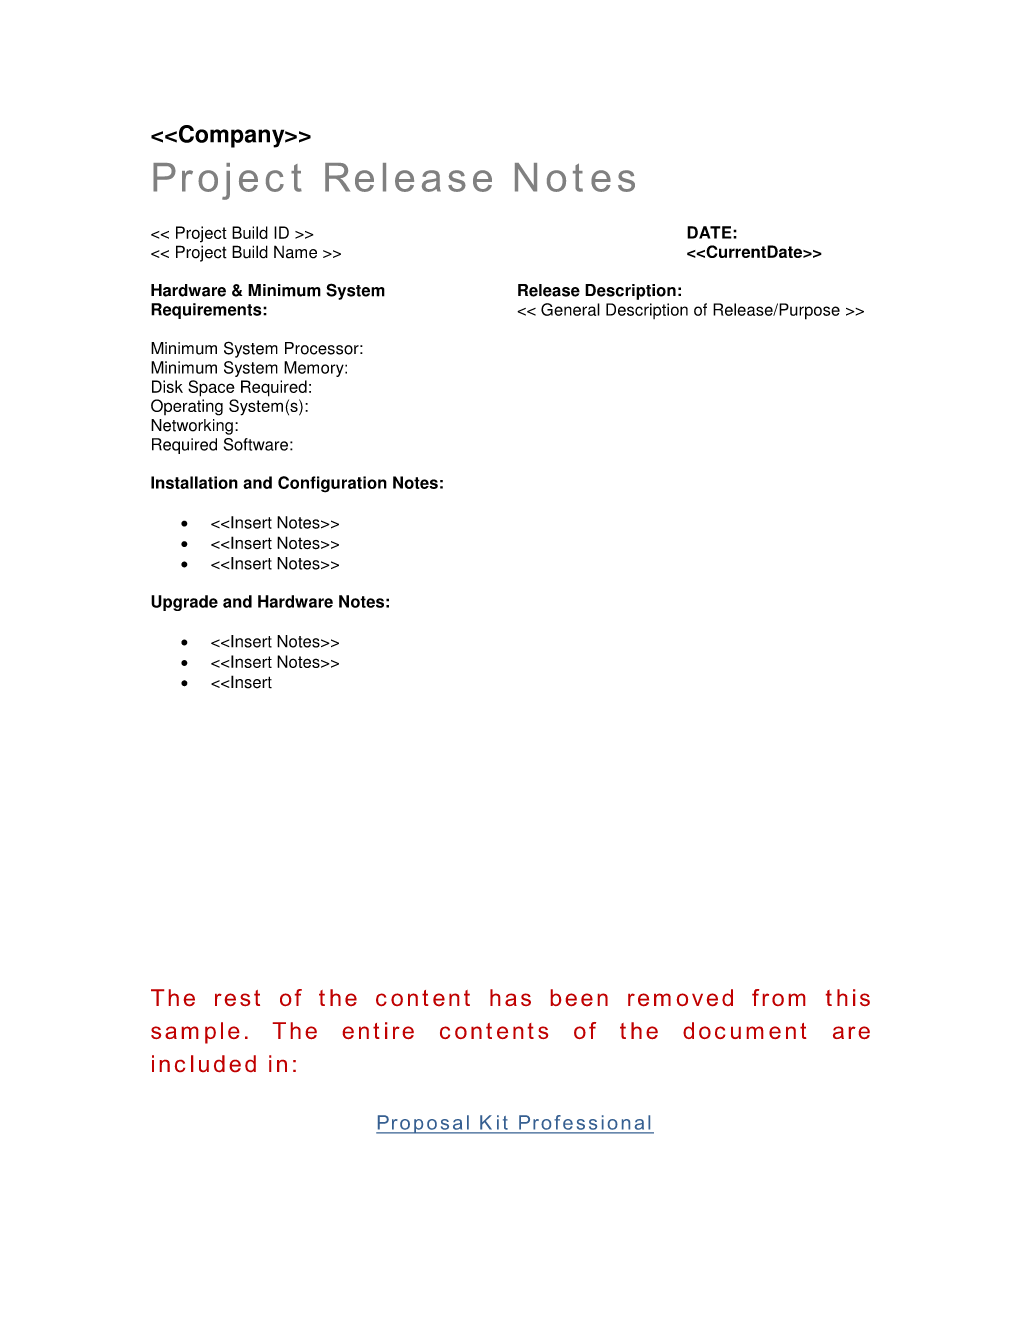 How To Write Your Own Project Release Notes Worksheet